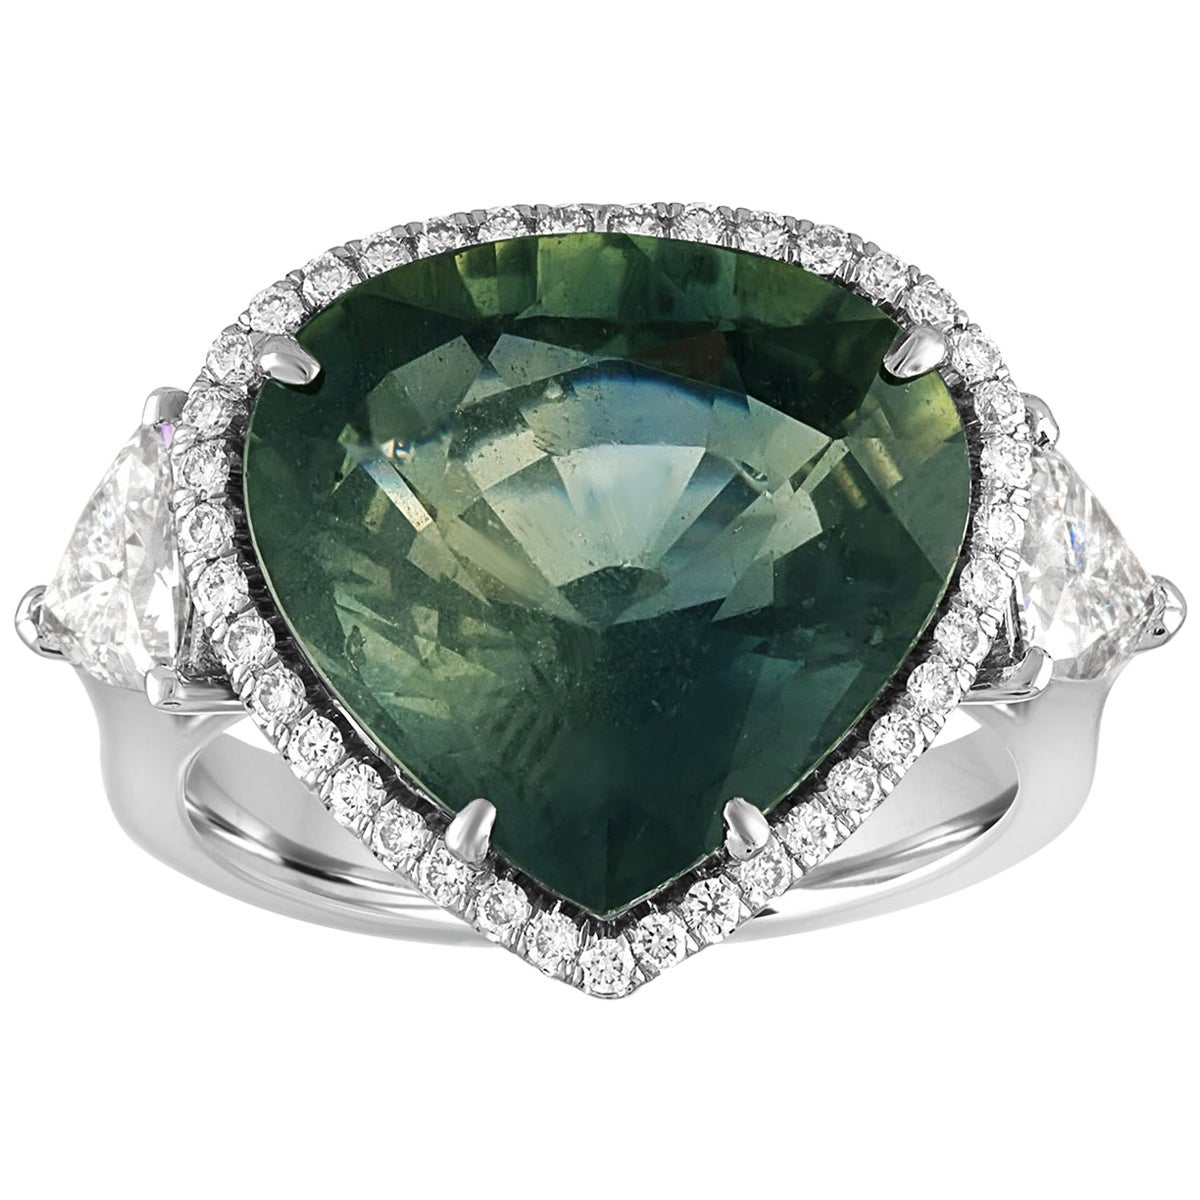 AGL Certified 11.61 Carat No Heat Bluish Green Sapphire Diamond Ring